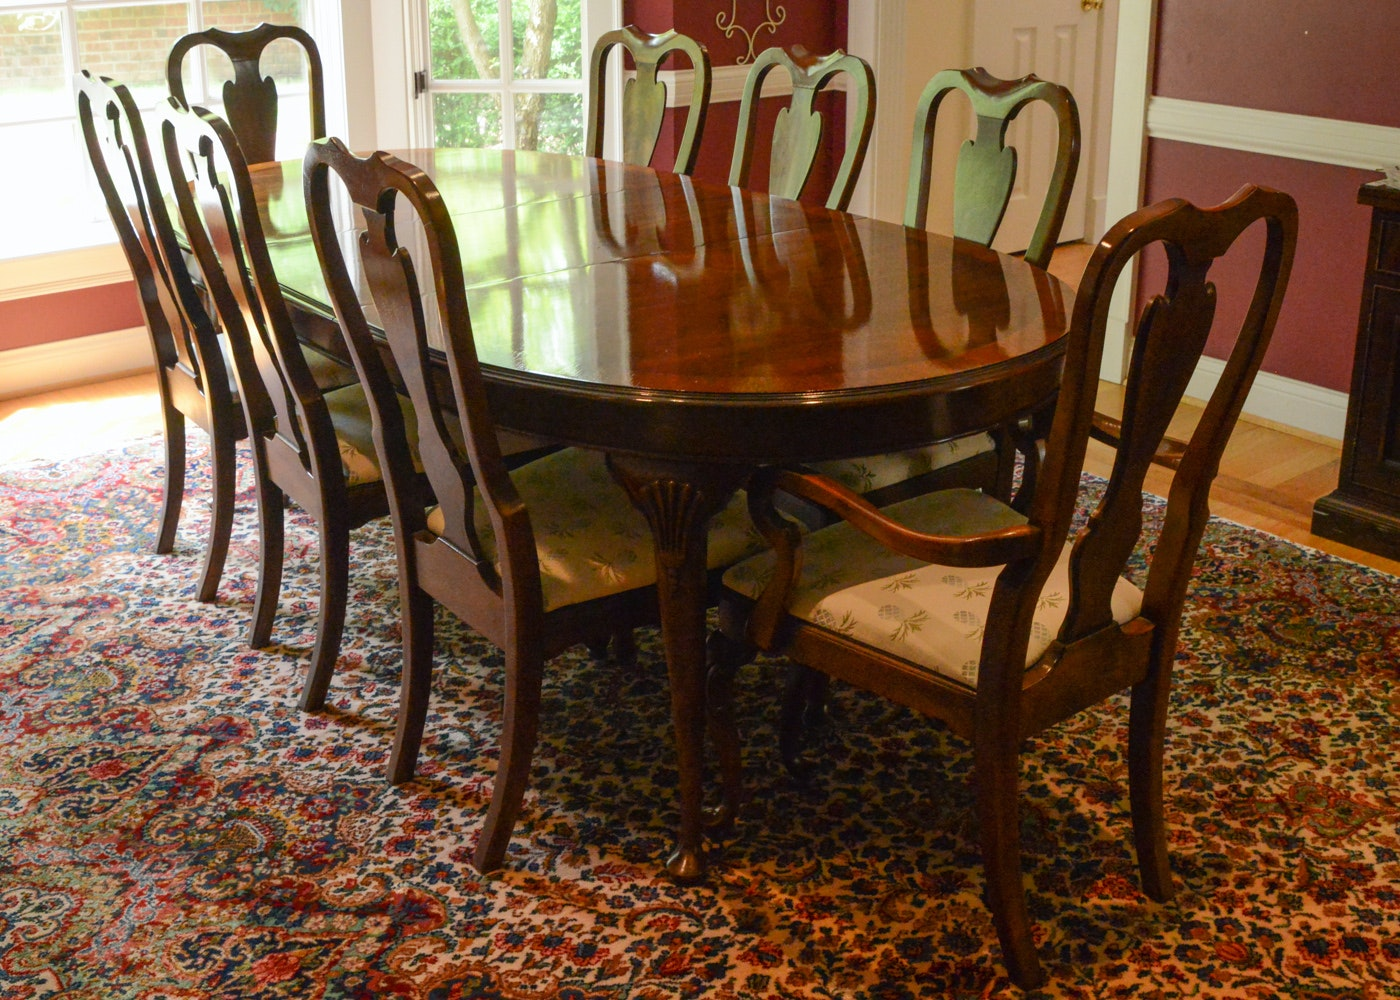 Drexel Heritage Mahogany Dining Room Table and Chairs ... & Drexel Heritage Mahogany Dining Room Table and Chairs : EBTH